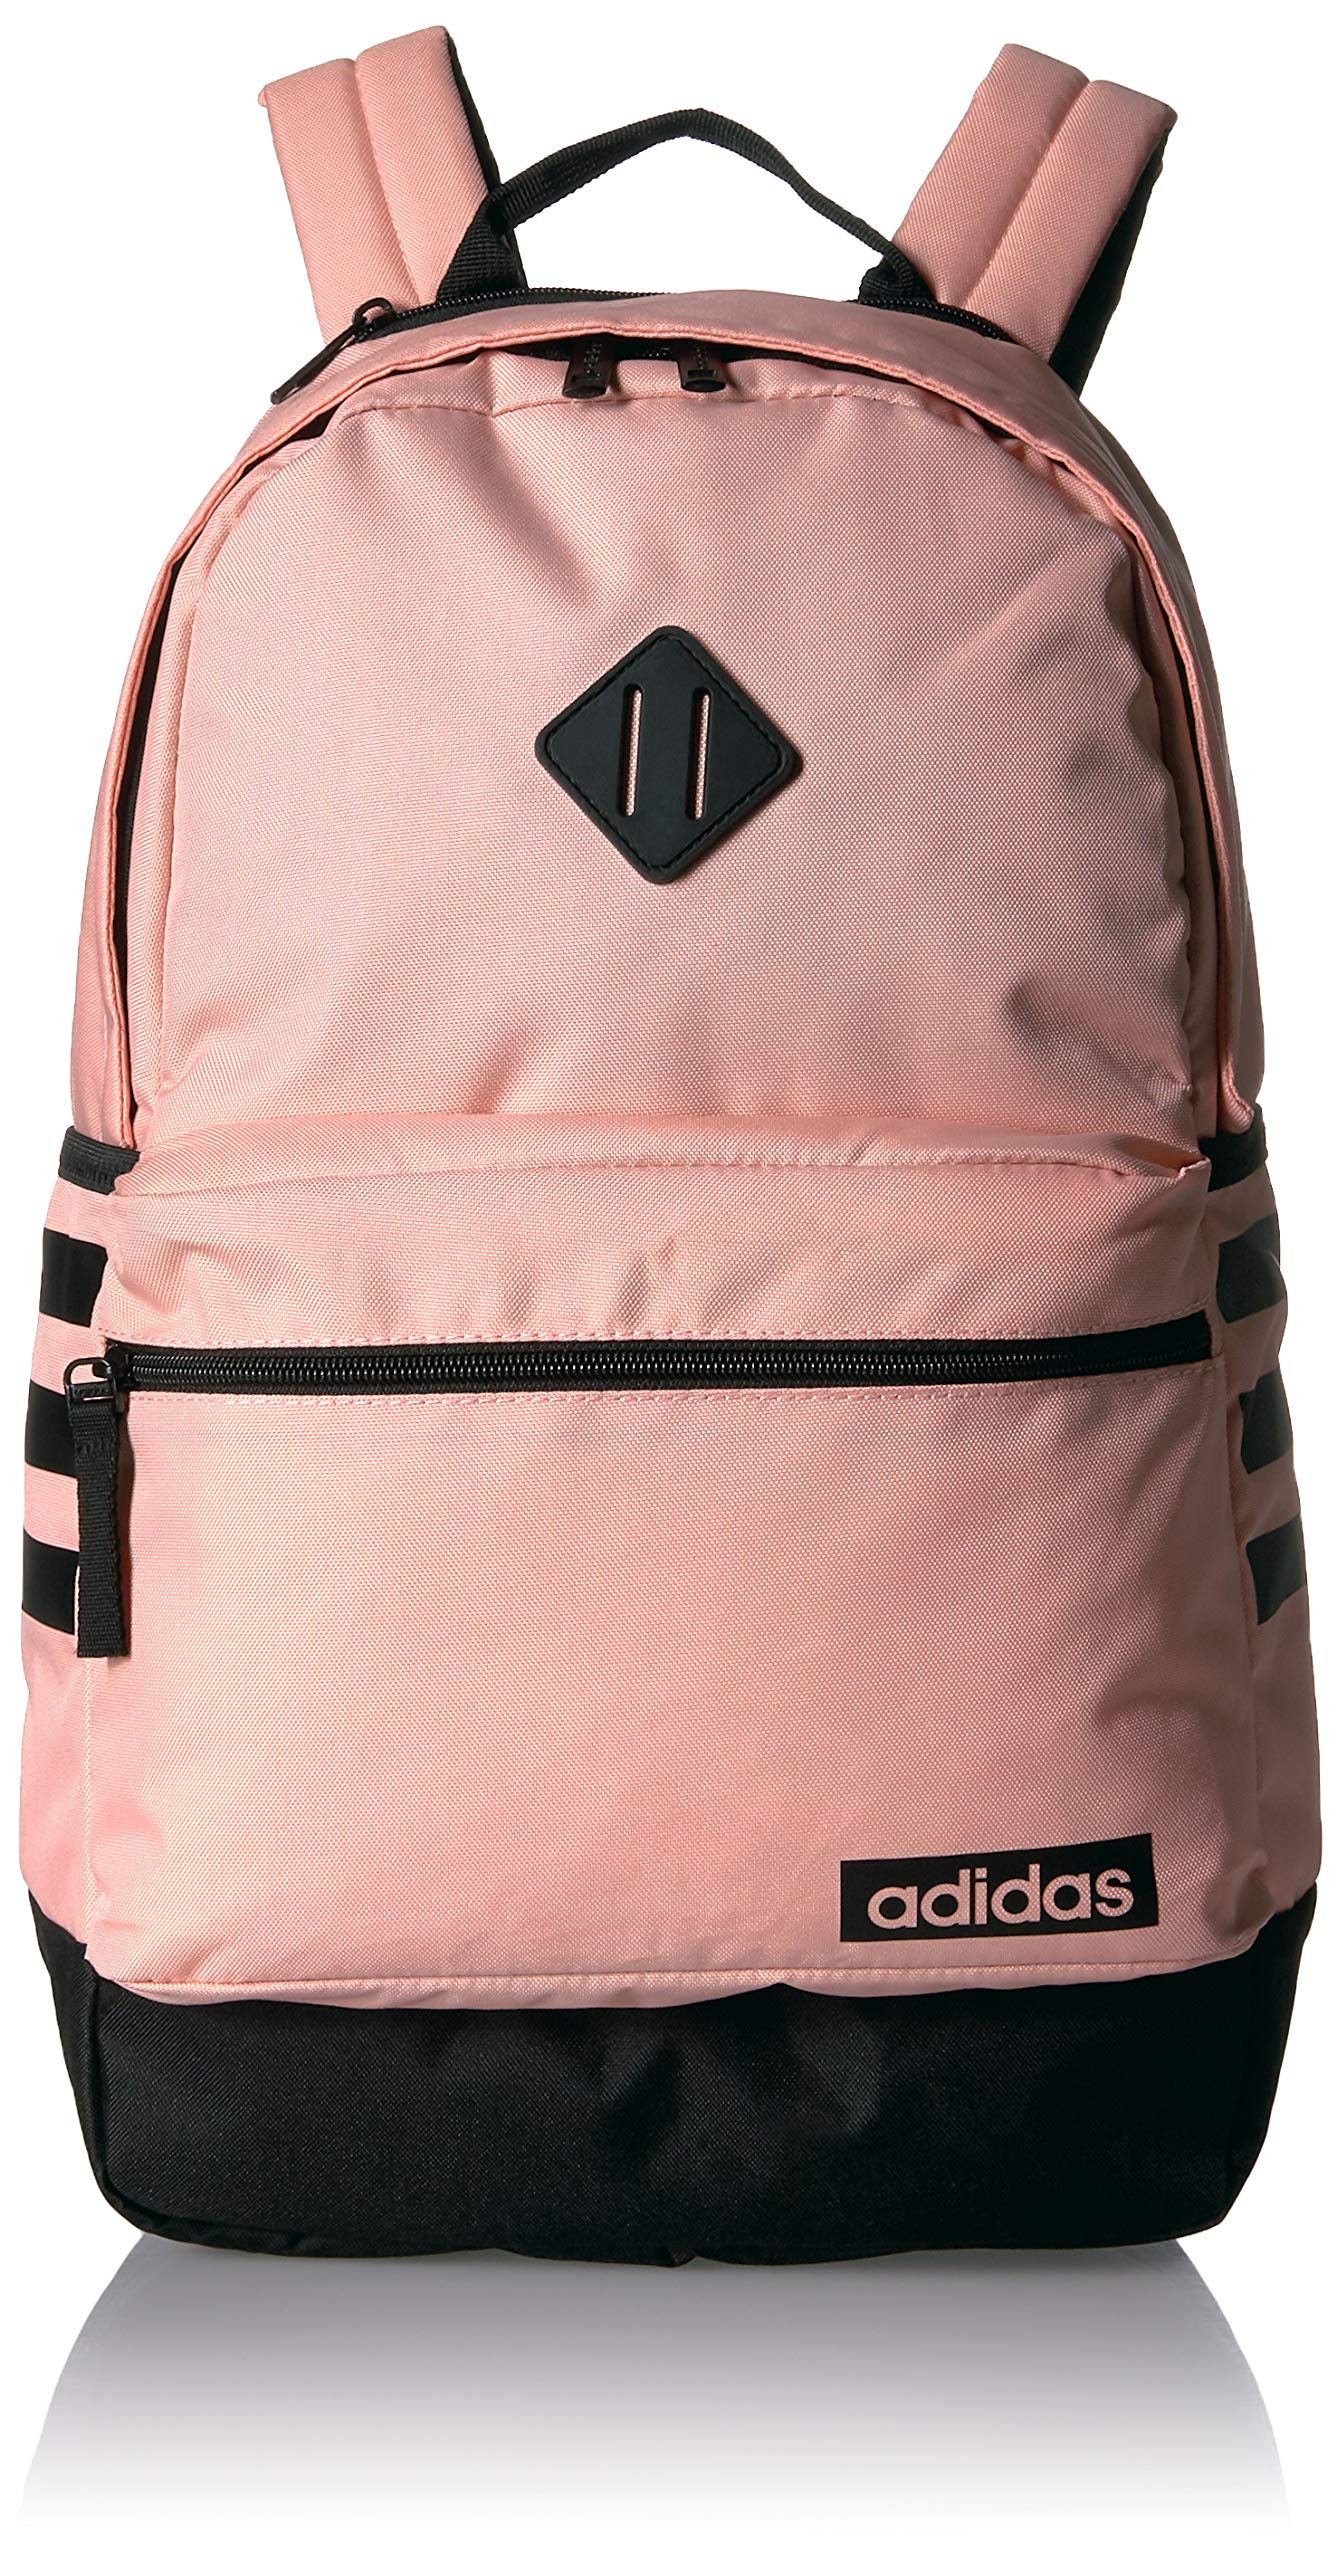 adidas Classic 3s Backpack, Glow Pink/Black, One Size